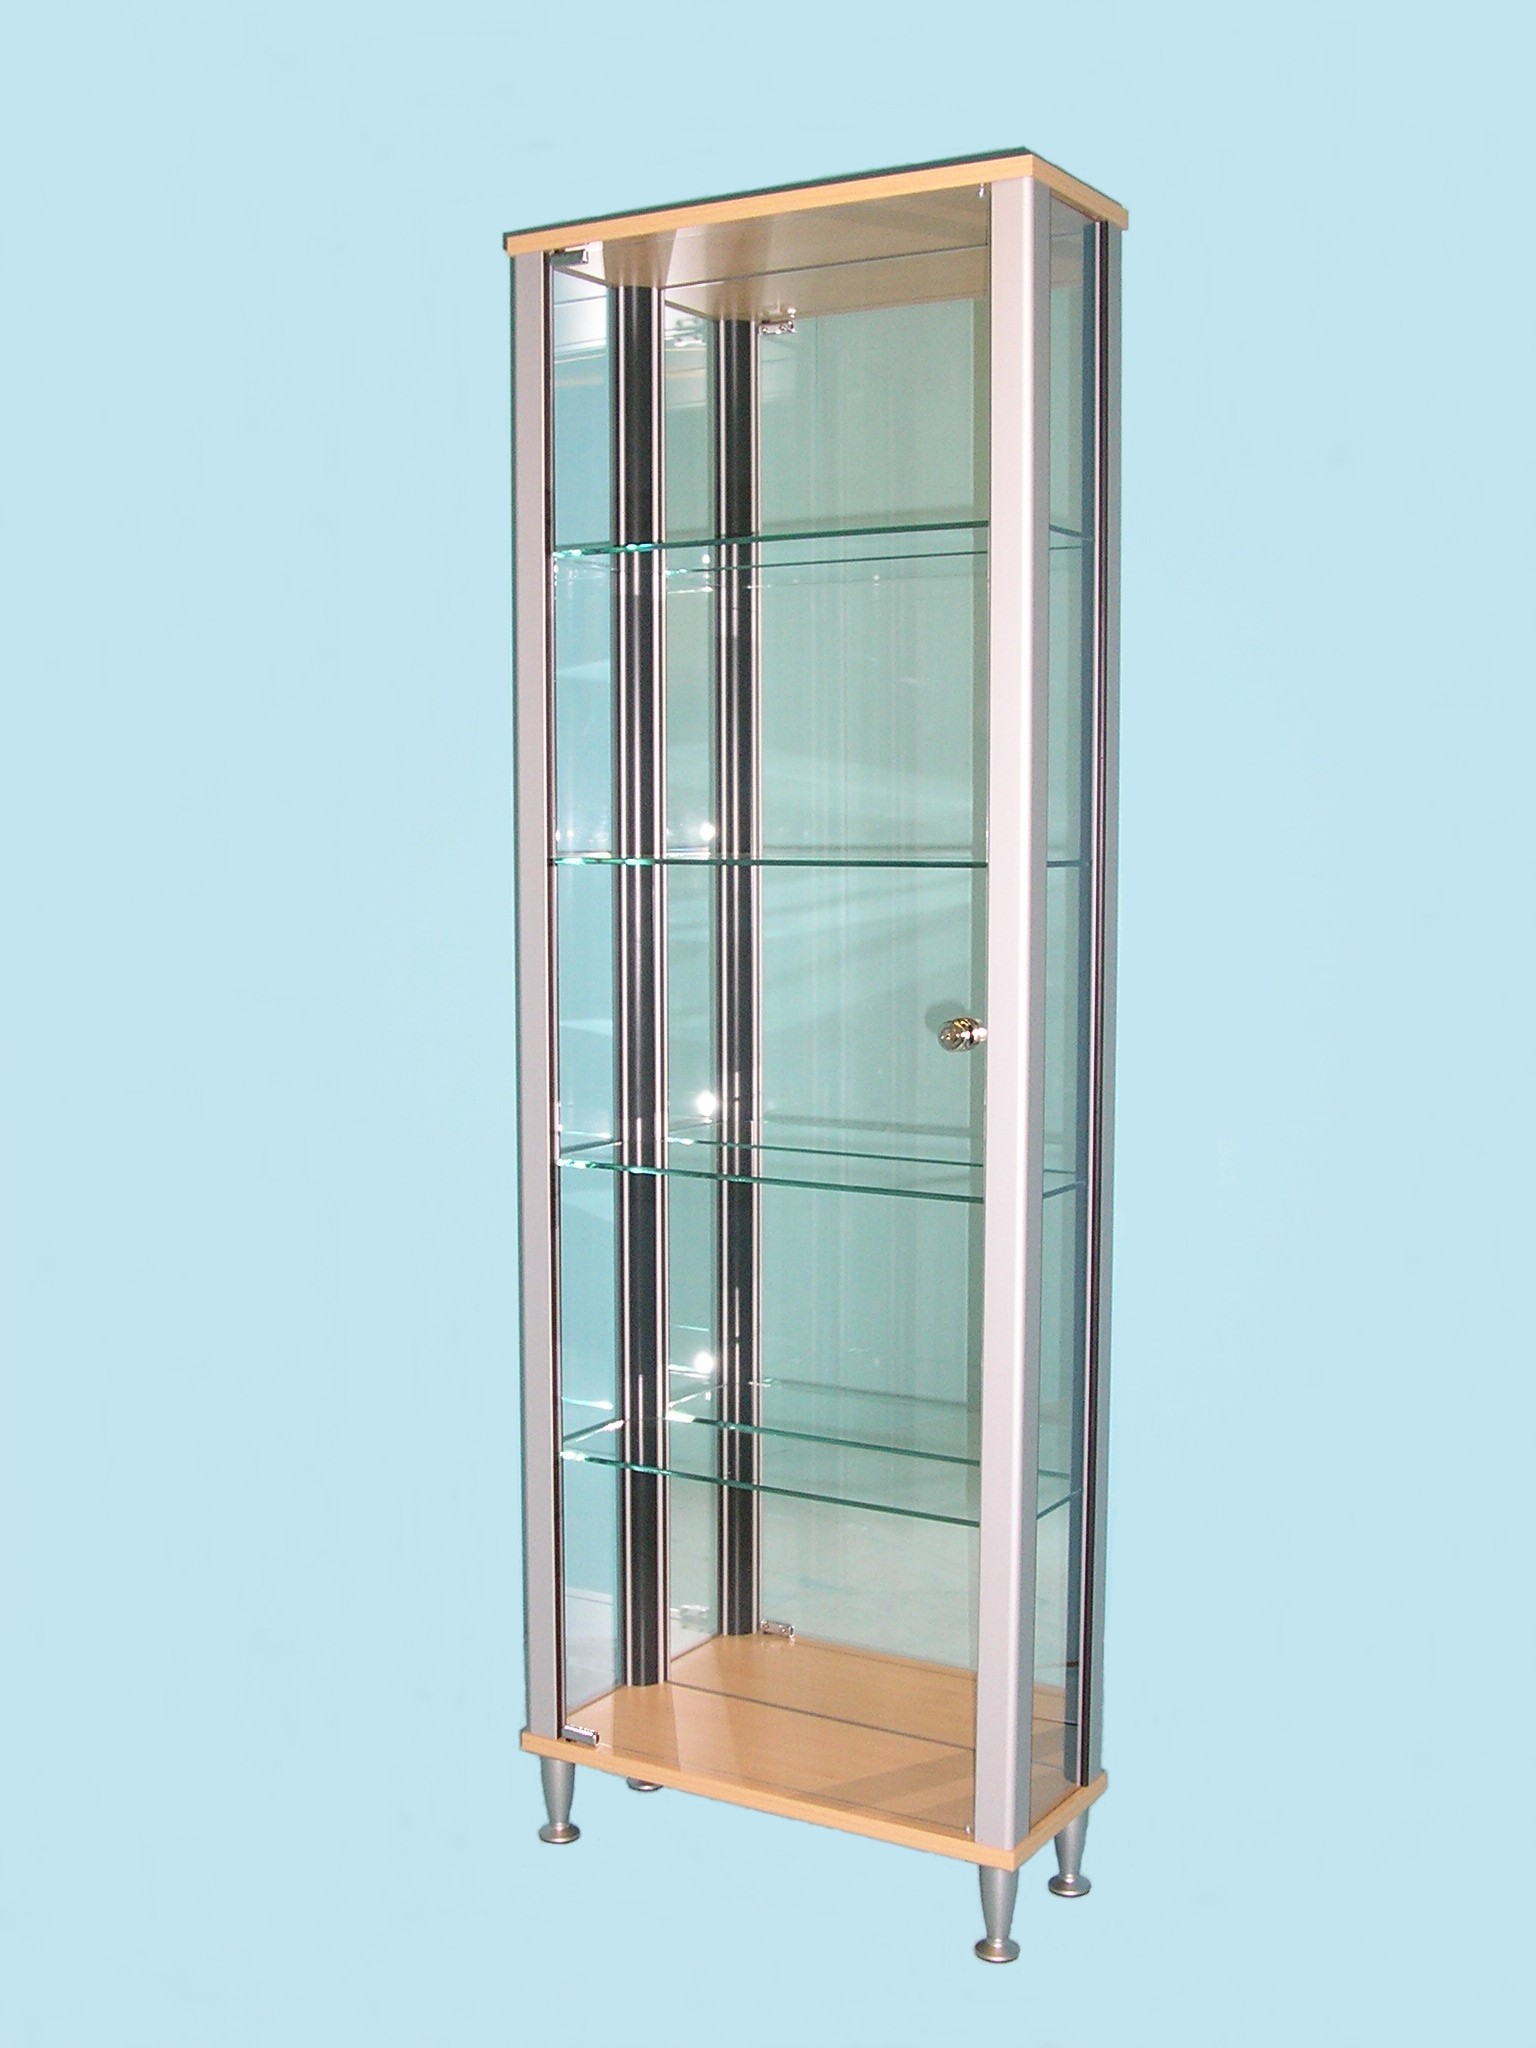 Designex Cabinets D61 Beech tower glass display cabinet